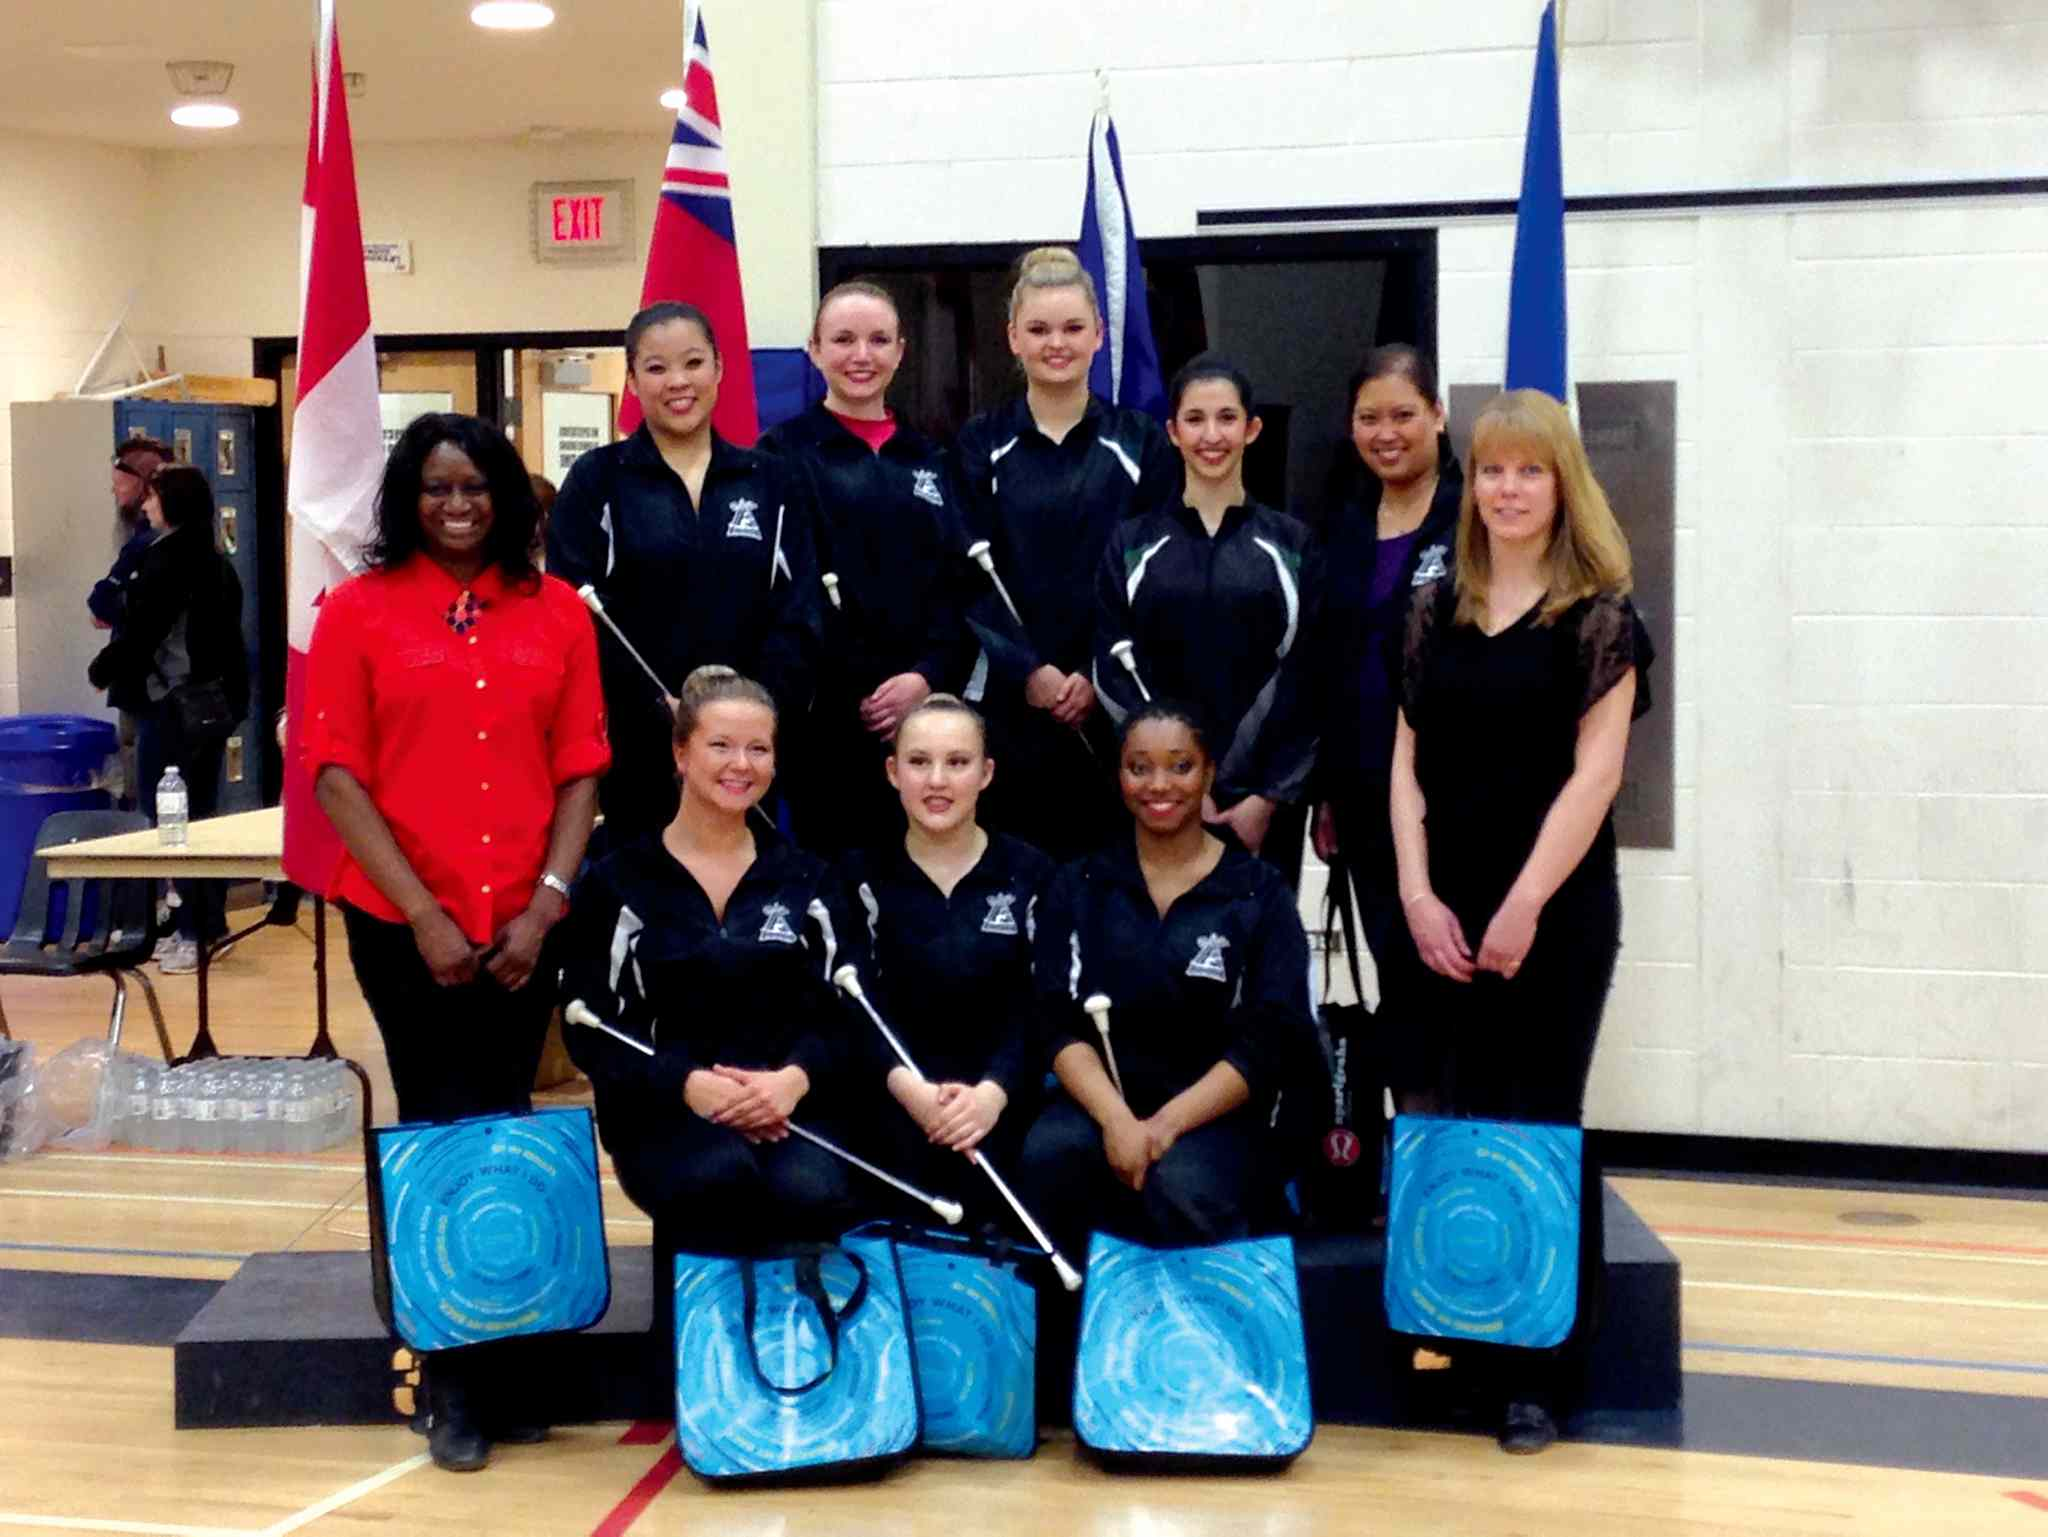 The contingent that will be heading to the Canadian Team Trial Championships to represent Manitoba in Saskatoon between May 16 and 19. Back row, left to right: Rhaychelle Tan, Jennifer Parisian, Sara Sabeski, Milana Schipper, and Jane Tan (coach). Front row, left to right: Leisha Strachan (coach), Jessica Pososki, Laura Tymchyshyn, Nikisah Hendrickson-Alexander, and Dana Petelski (coach).